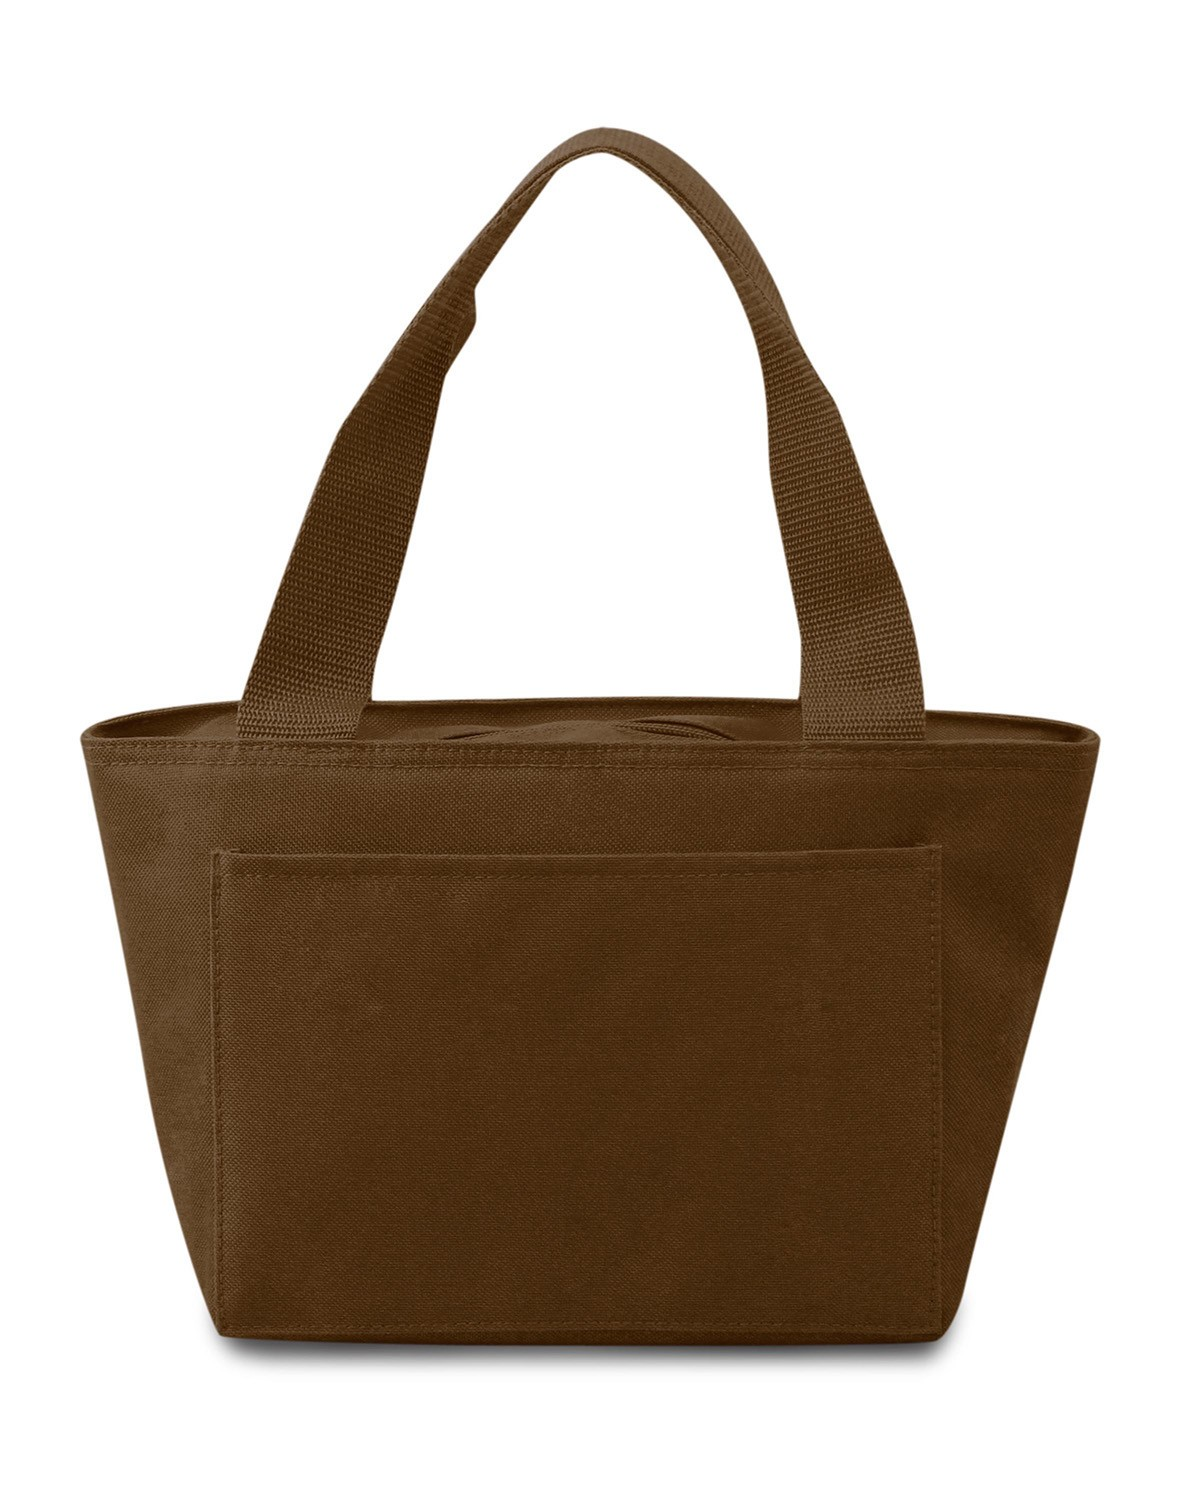 8808 Liberty Bags BROWN